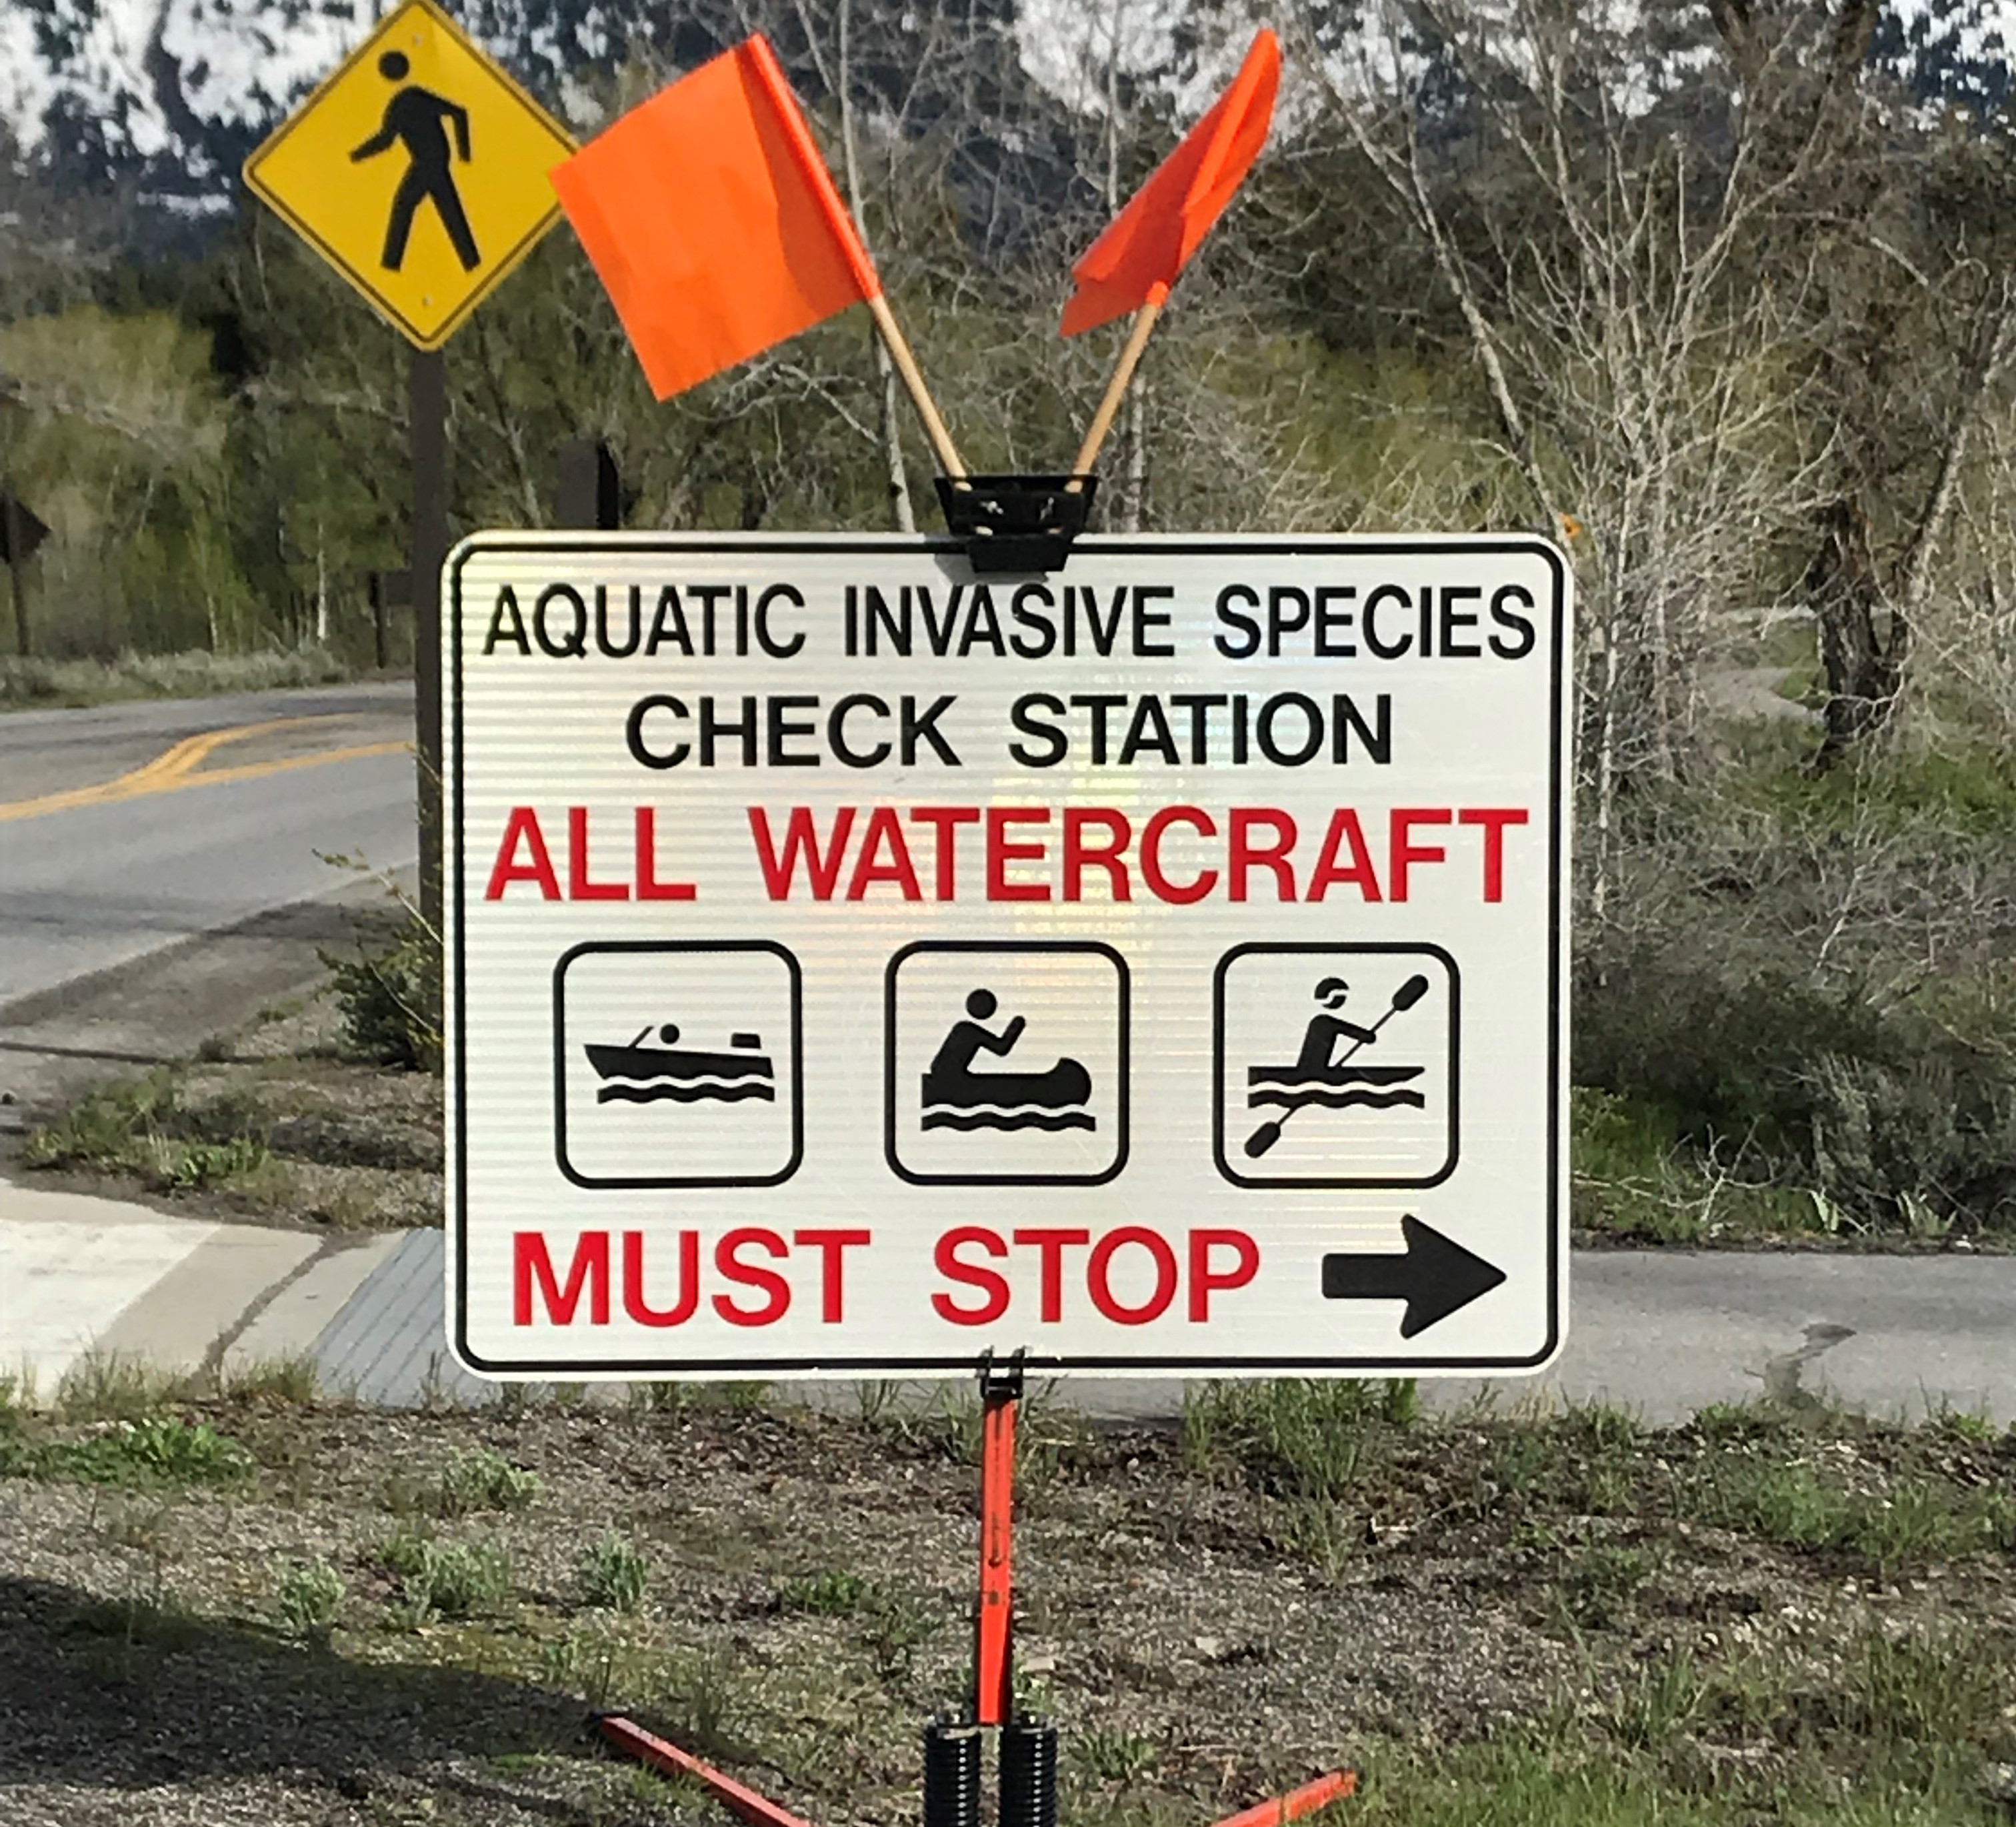 Photo of the park sign for the aquatic invasives check in station.